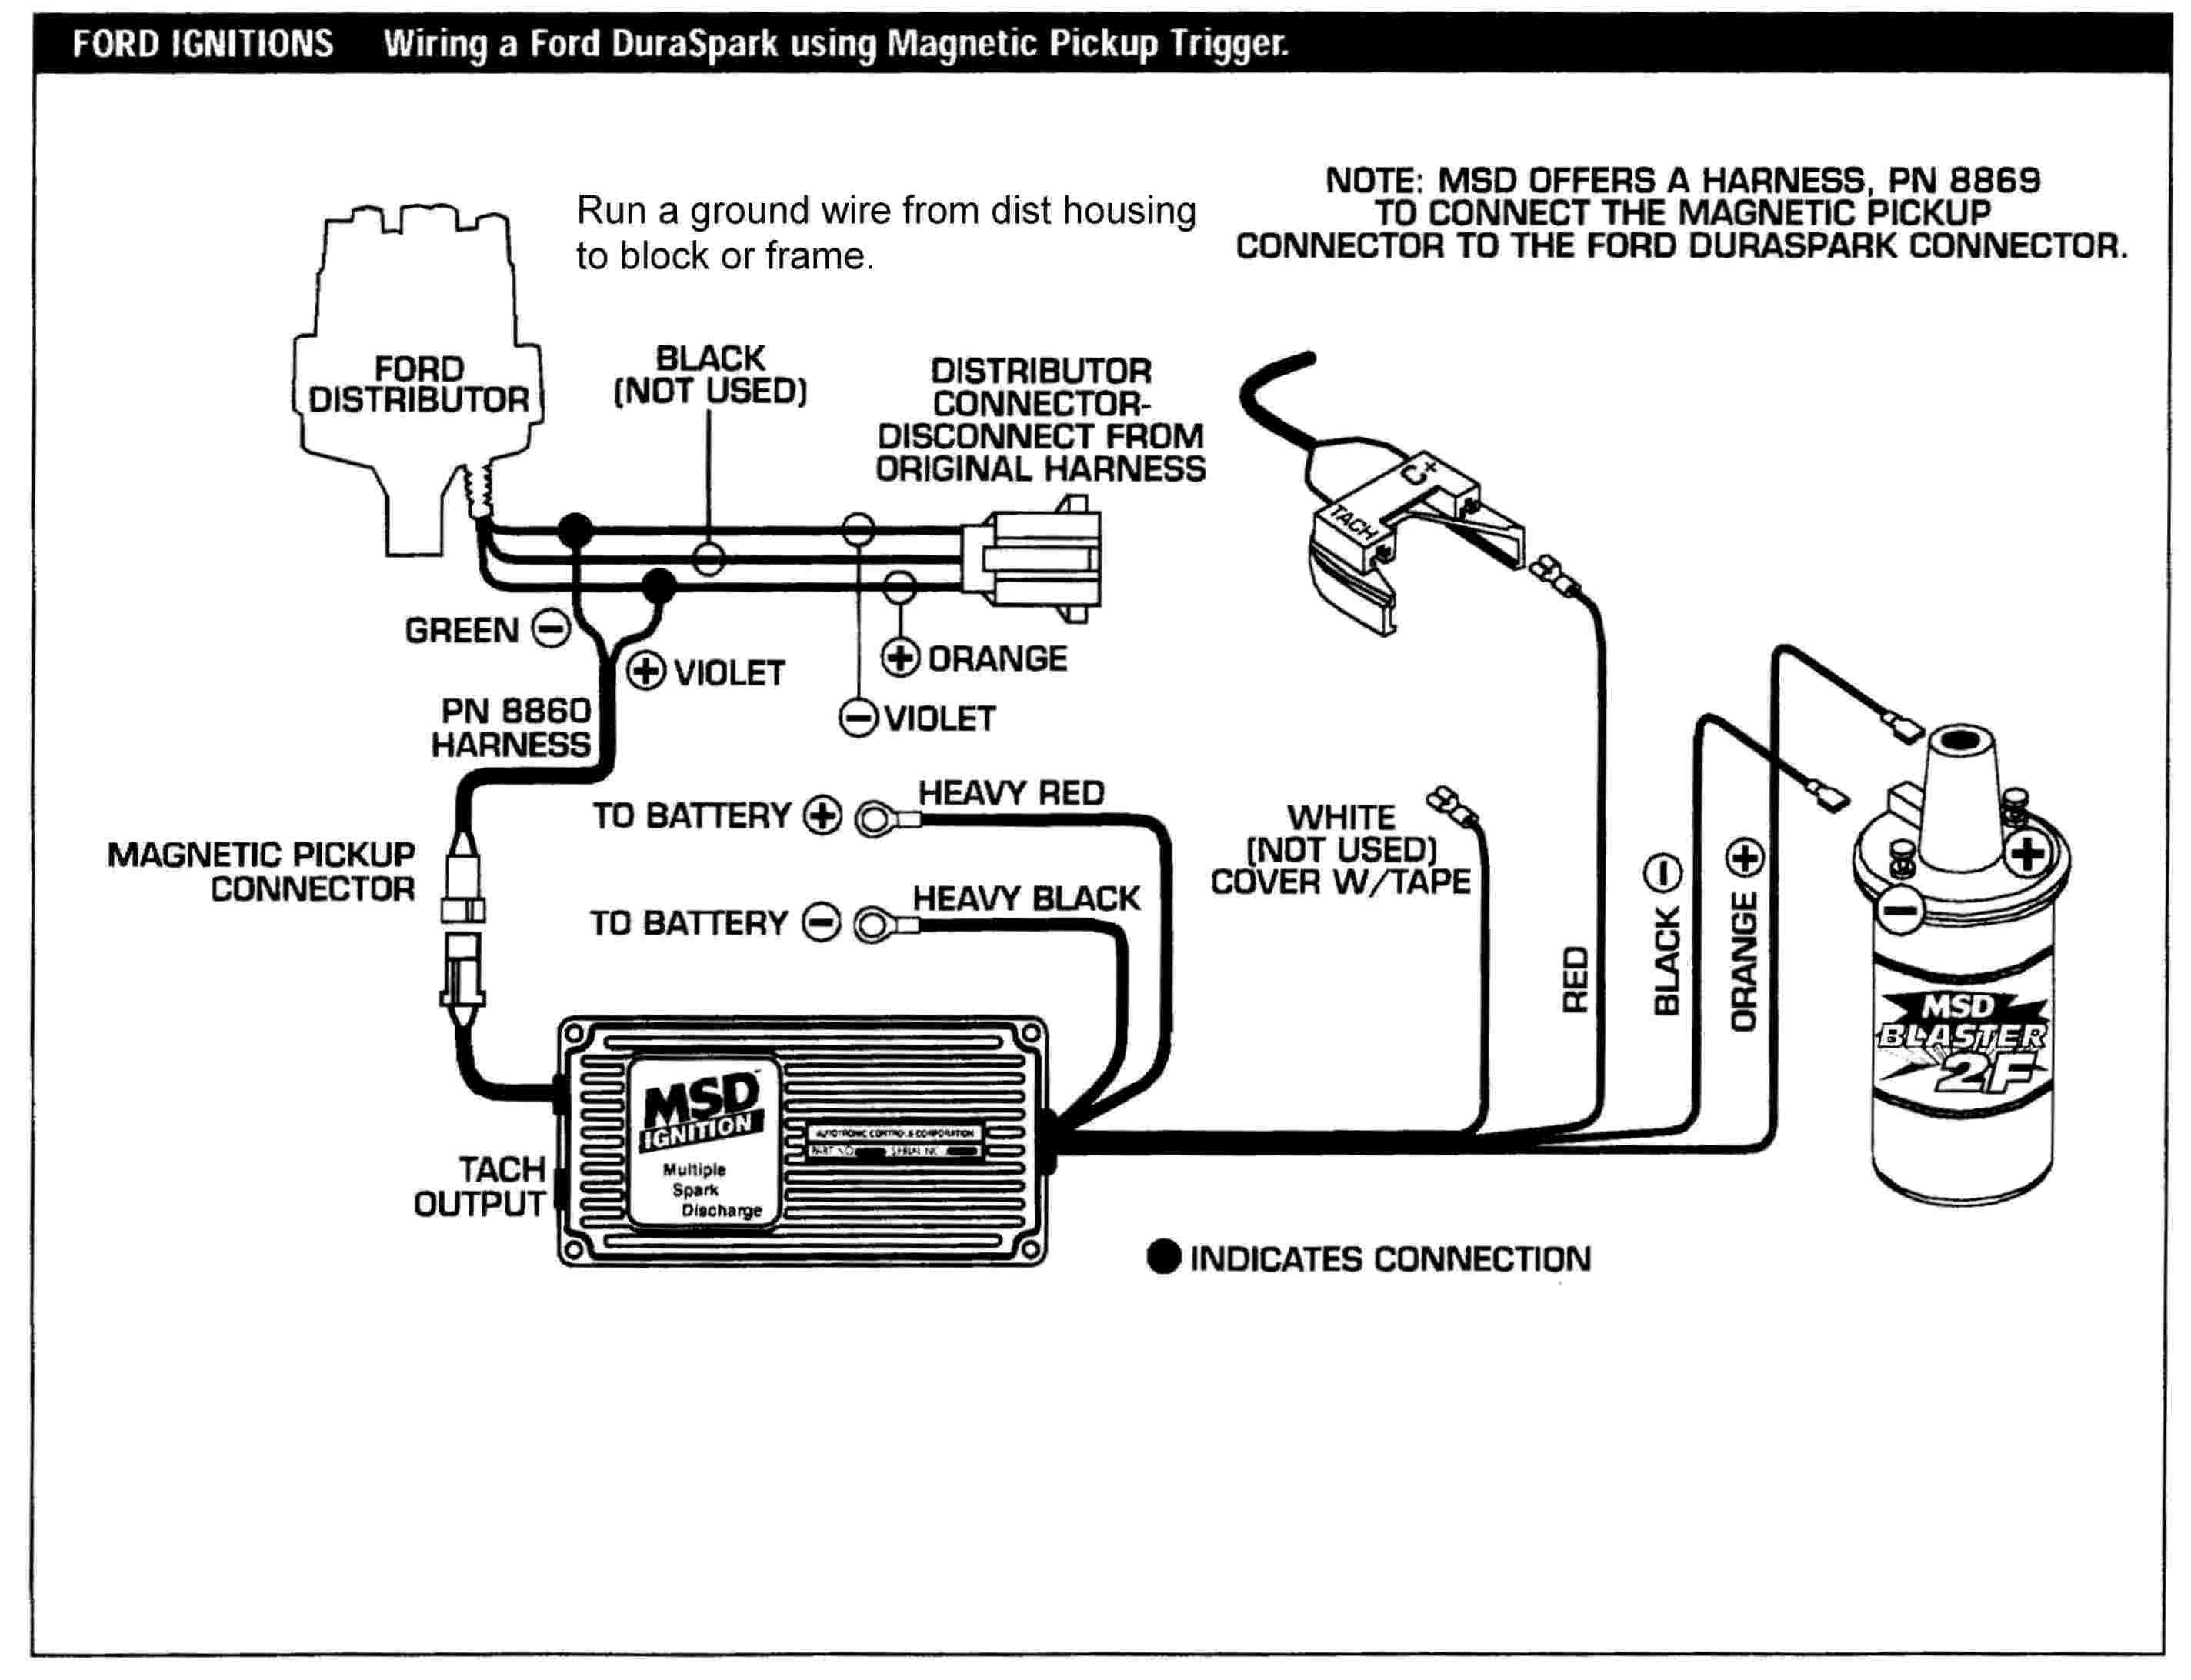 DIAGRAM] Ford 302 Msd Wiring Diagram FULL Version HD Quality Wiring Diagram  - JOHNSWIRINGB.DSIMOLA.IT  Dsimola.it